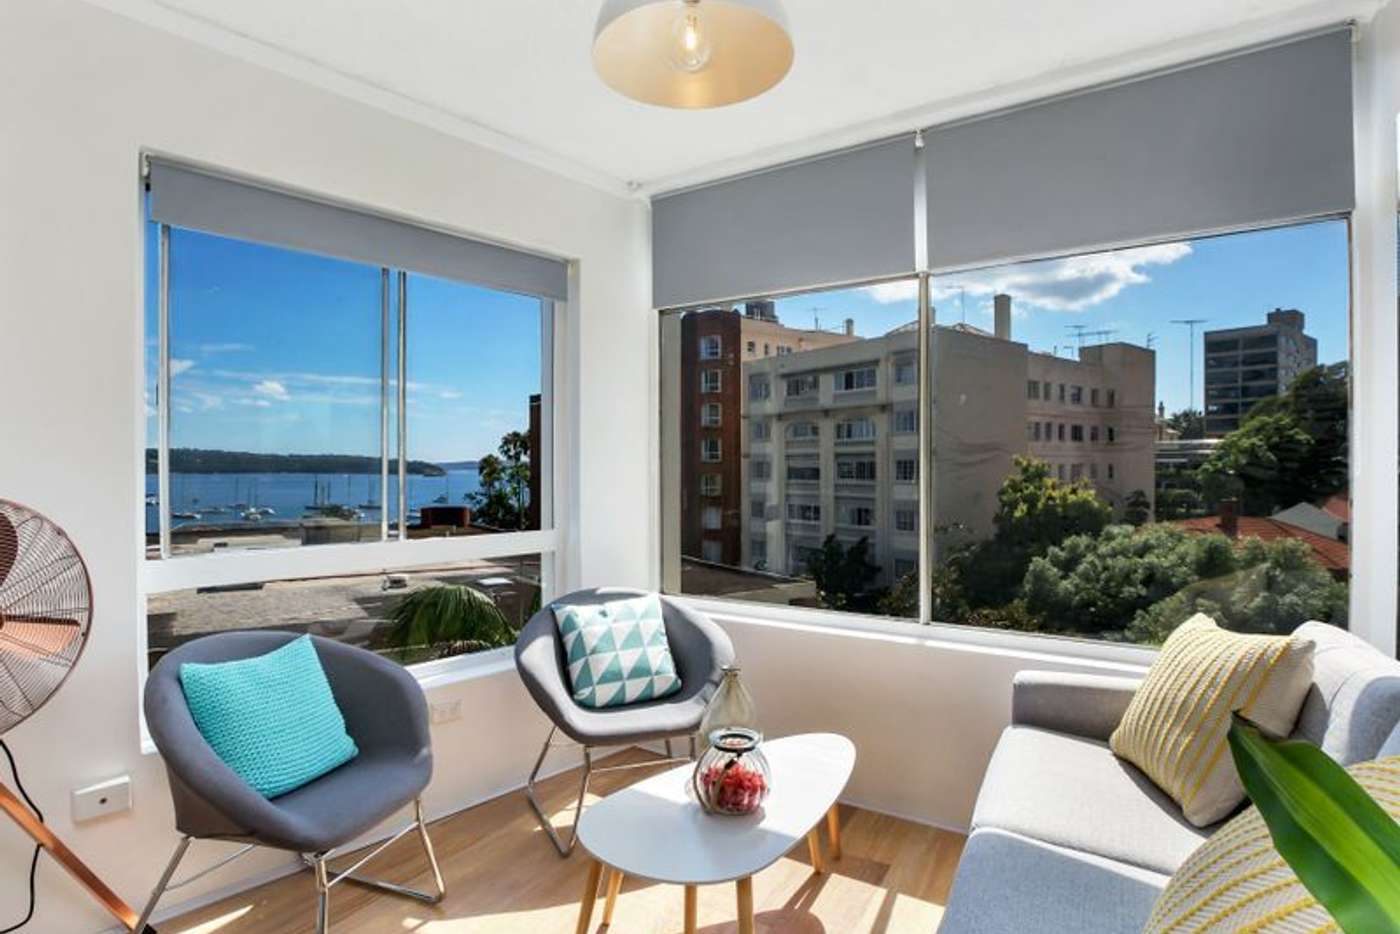 Main view of Homely apartment listing, 15/19 Ithaca Road, Elizabeth Bay NSW 2011